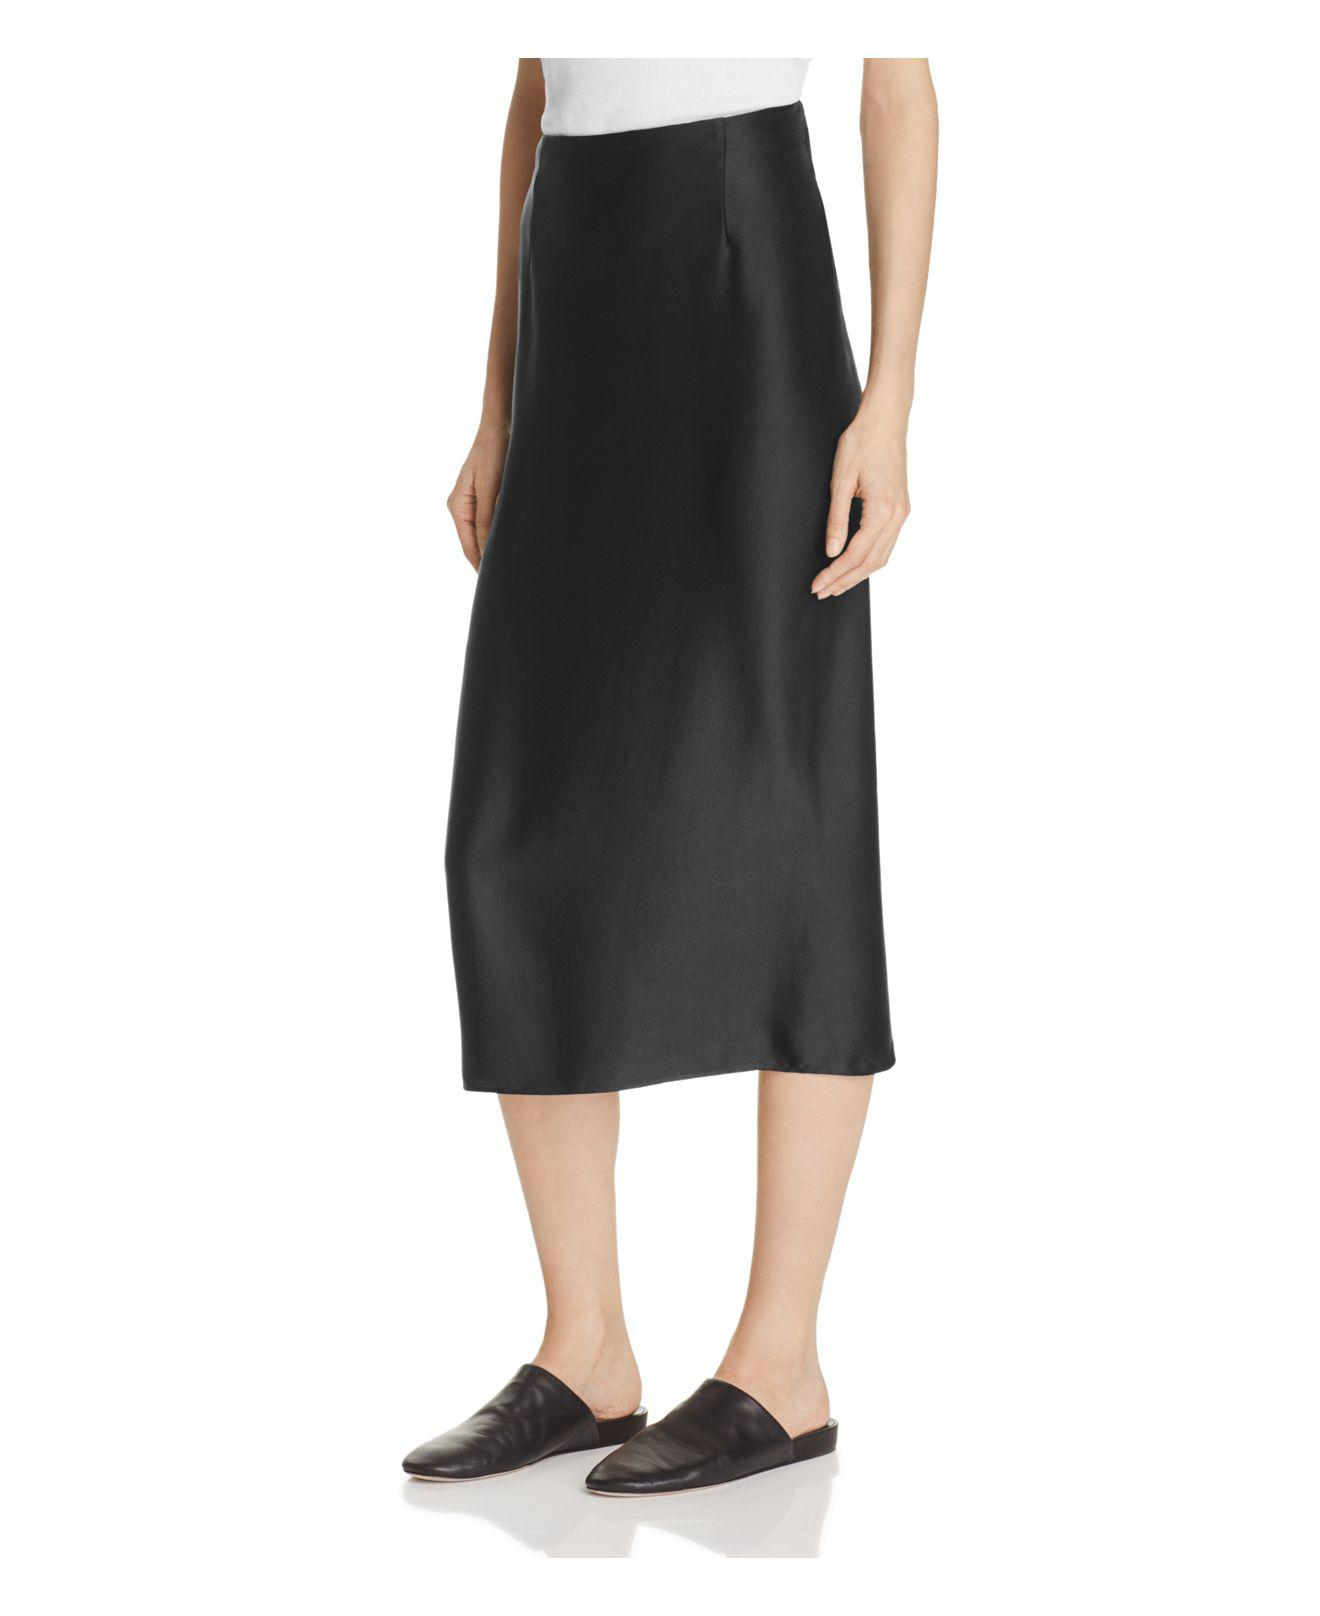 86414d5063 Gallery. Previously sold at: Bloomingdale's · Women's Midi Skirts